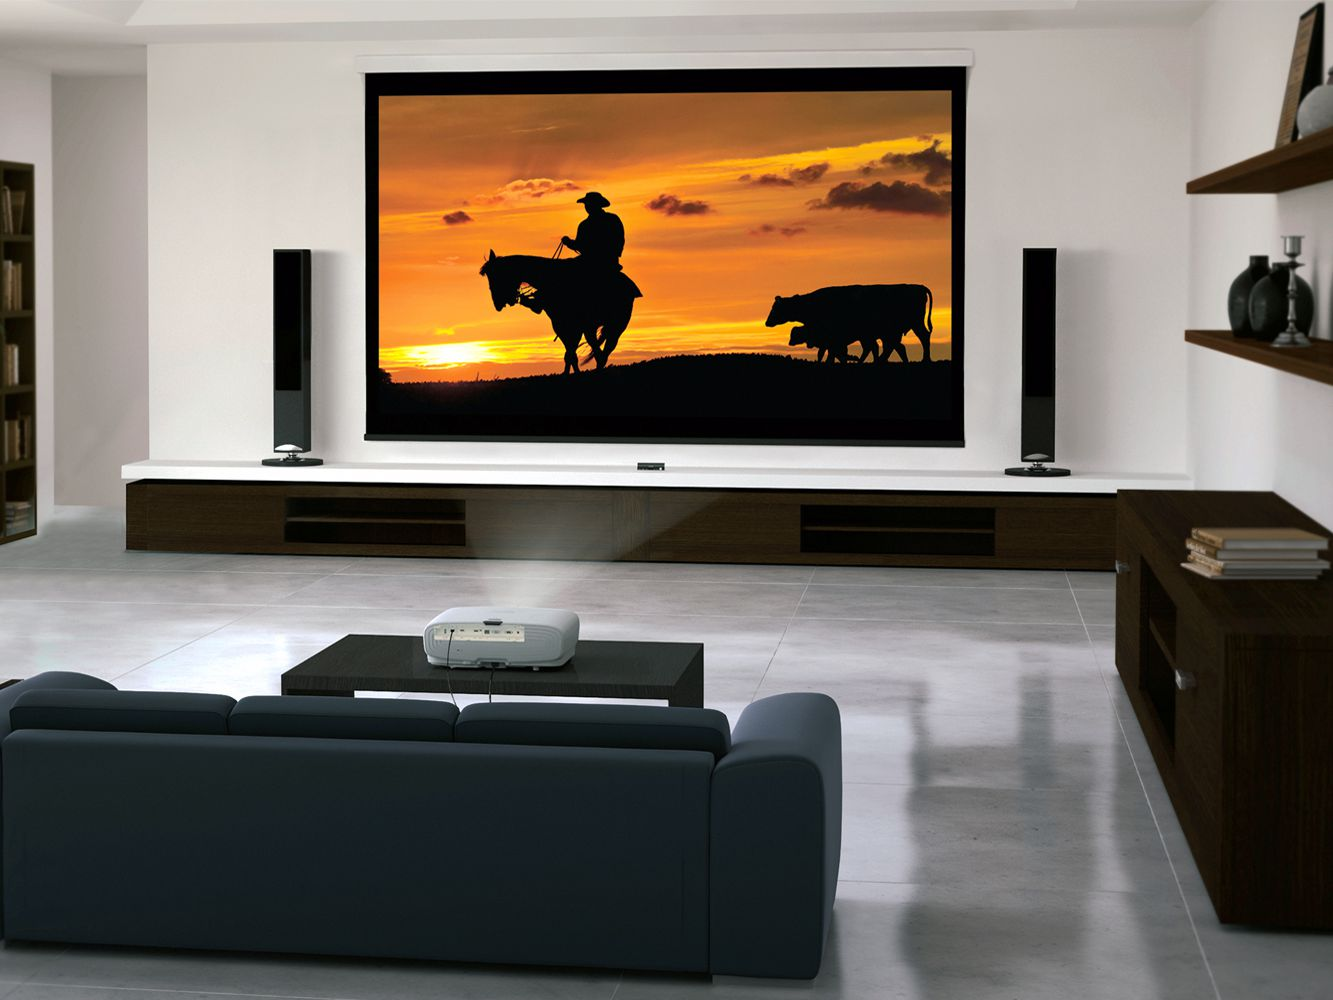 Video Projection Screens: What You Need to Know